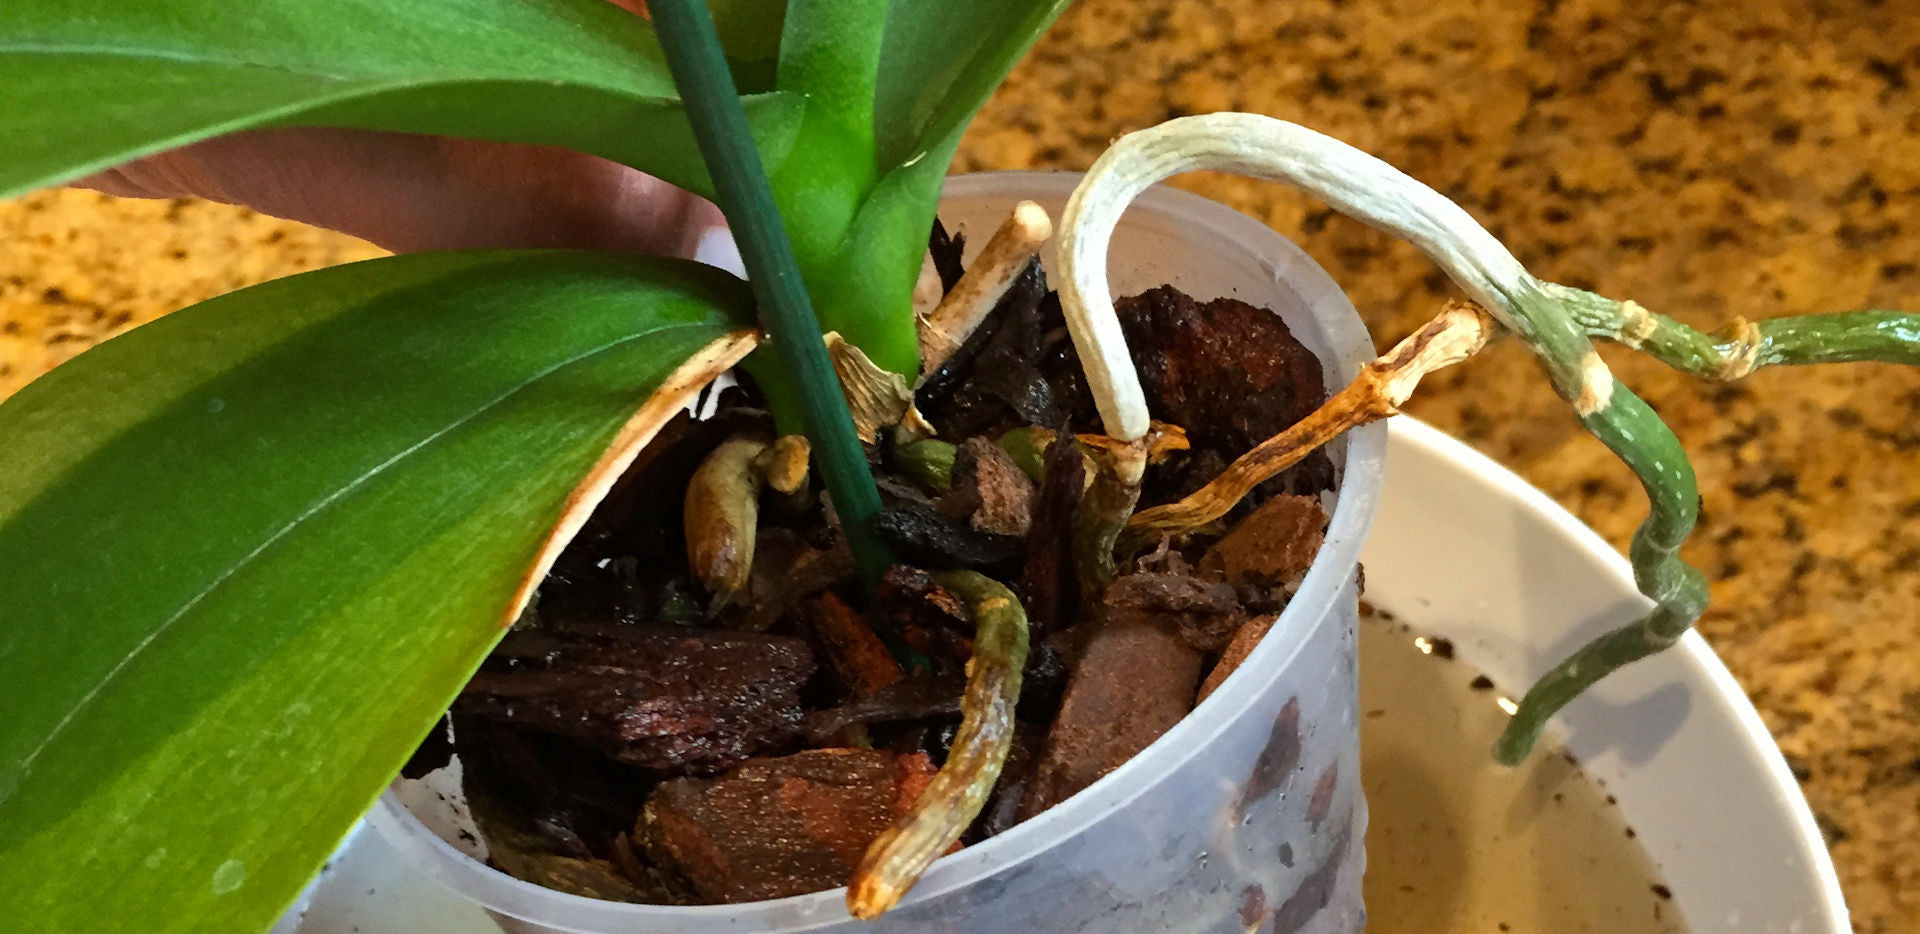 Repotting Orchids Orchid Care Part I Earthworm Technologies